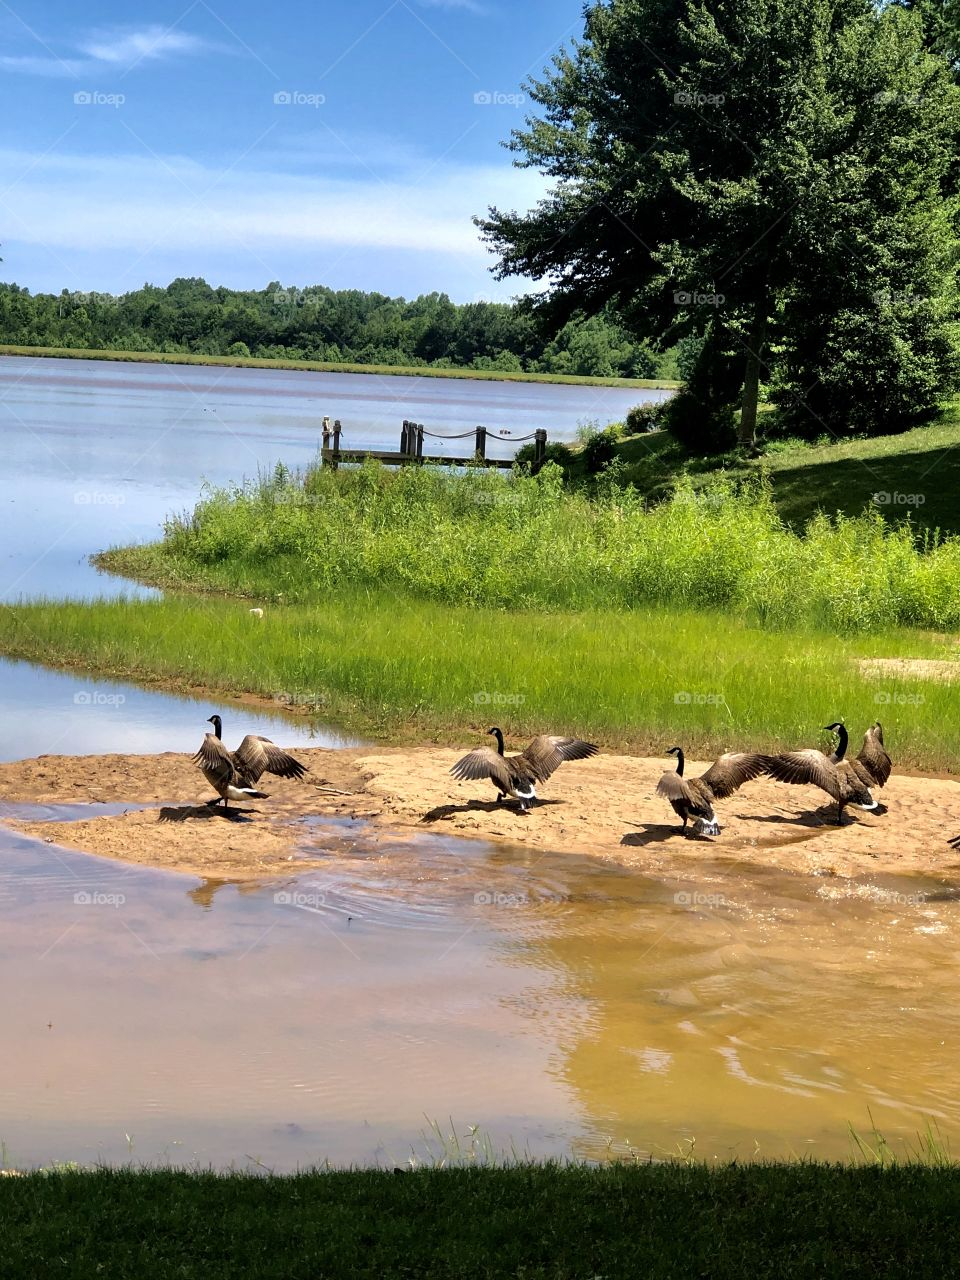 Just another candid shot of the Canadian geese taking flight from our neighborhood lakeshore.  Summertime at Lake Emory is just peaceful and beautiful.